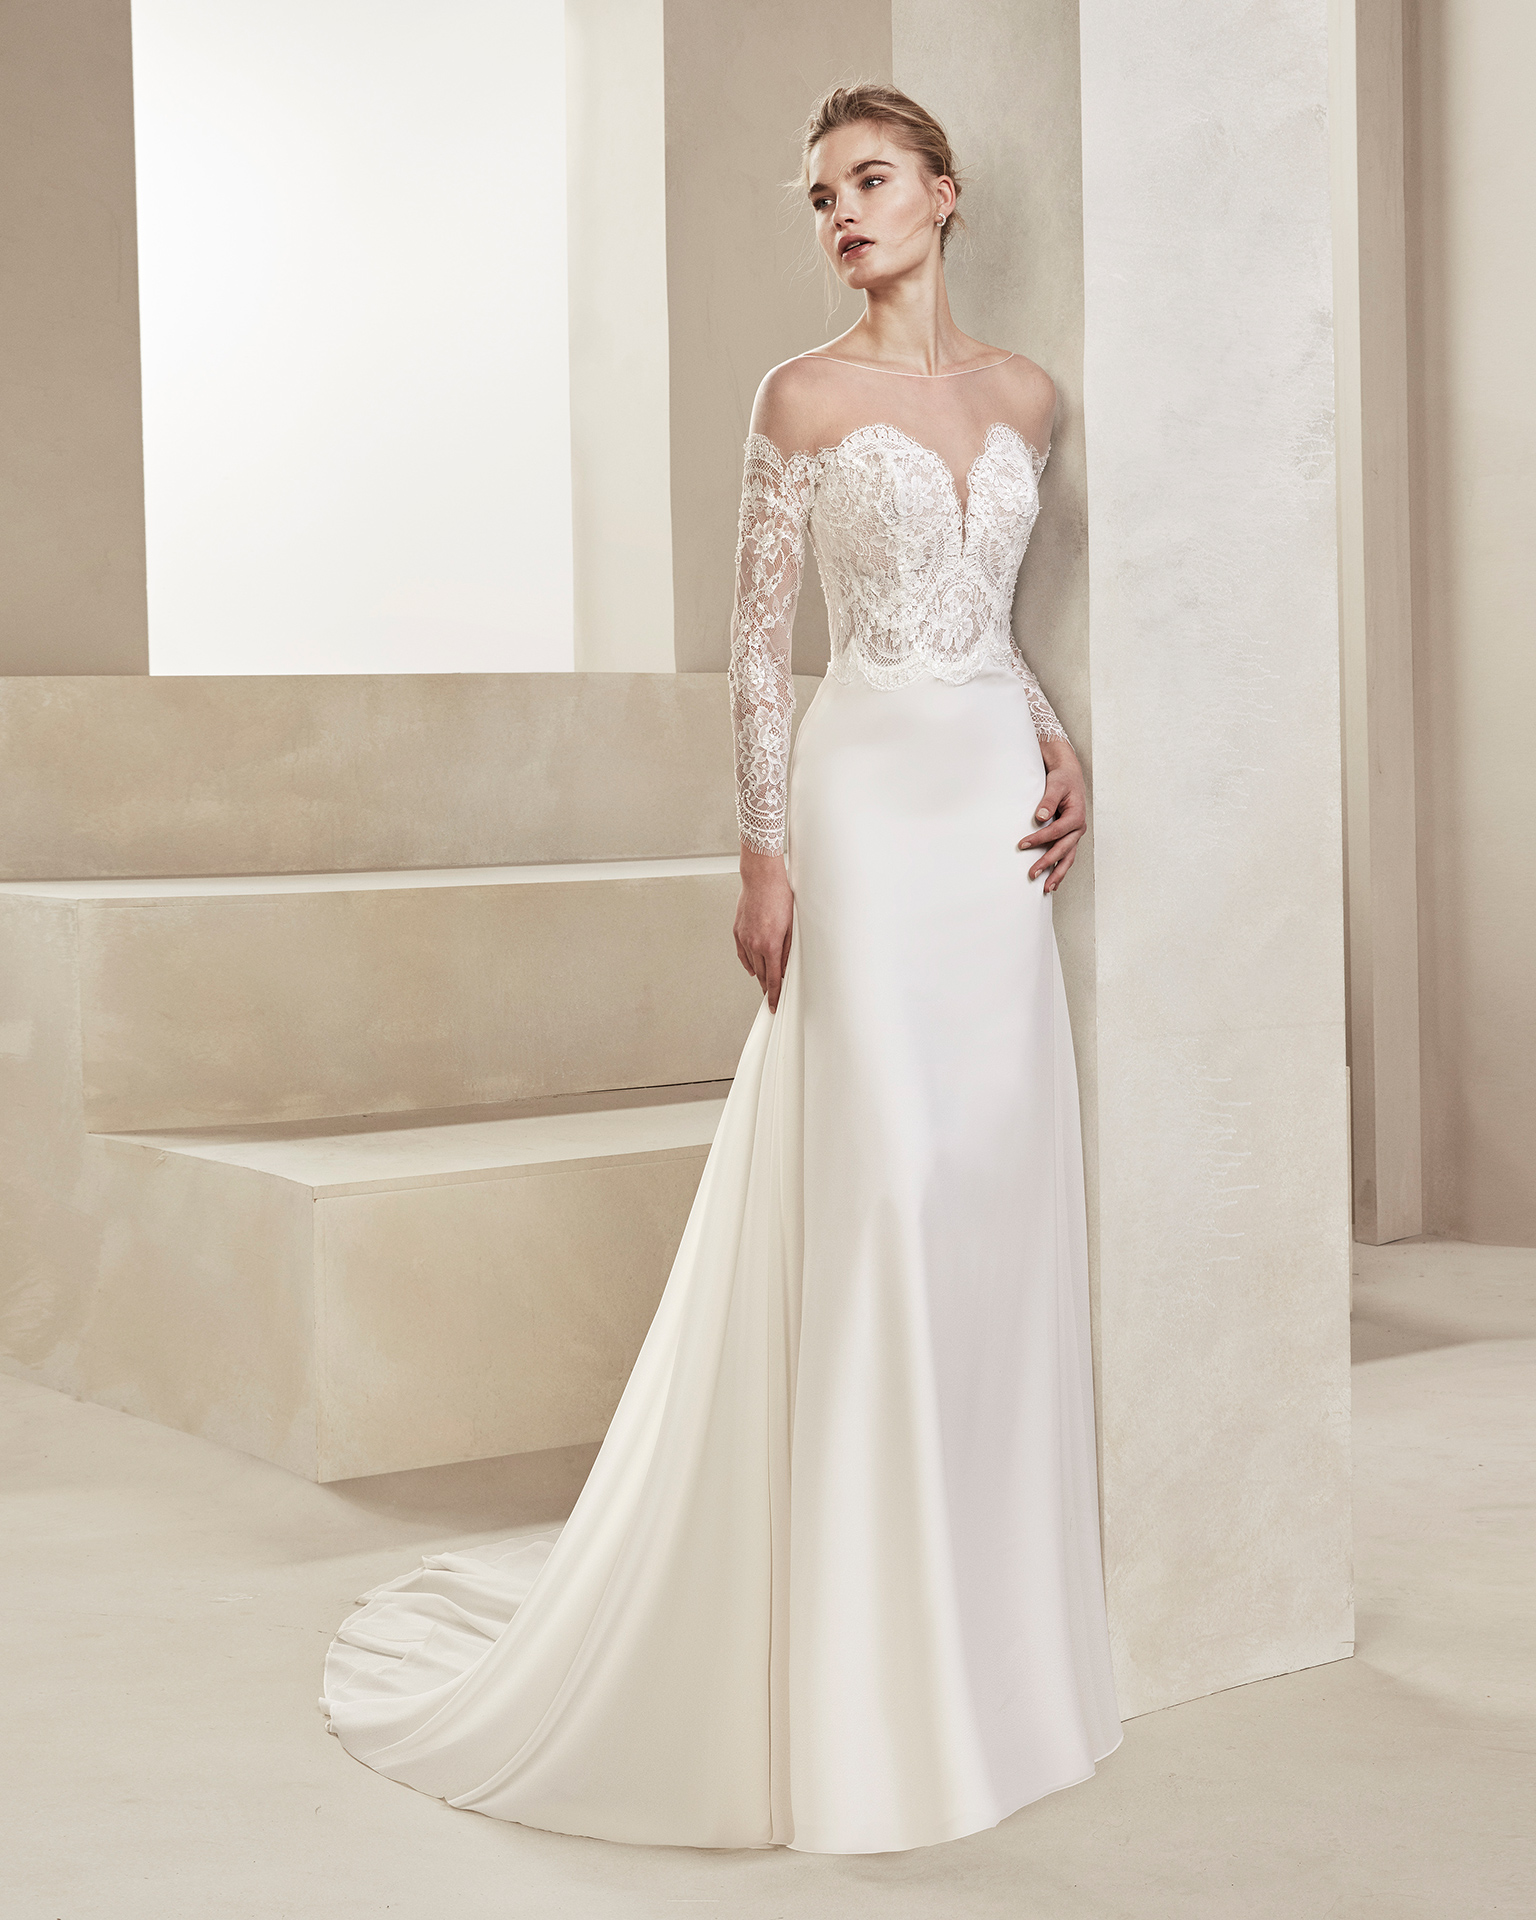 Sheath-style wedding dress in crepe Georgette and beaded lace. With sweetheart neckline and long lace sleeves. Available in natural. 2019 ALMA_NOVIA Collection.